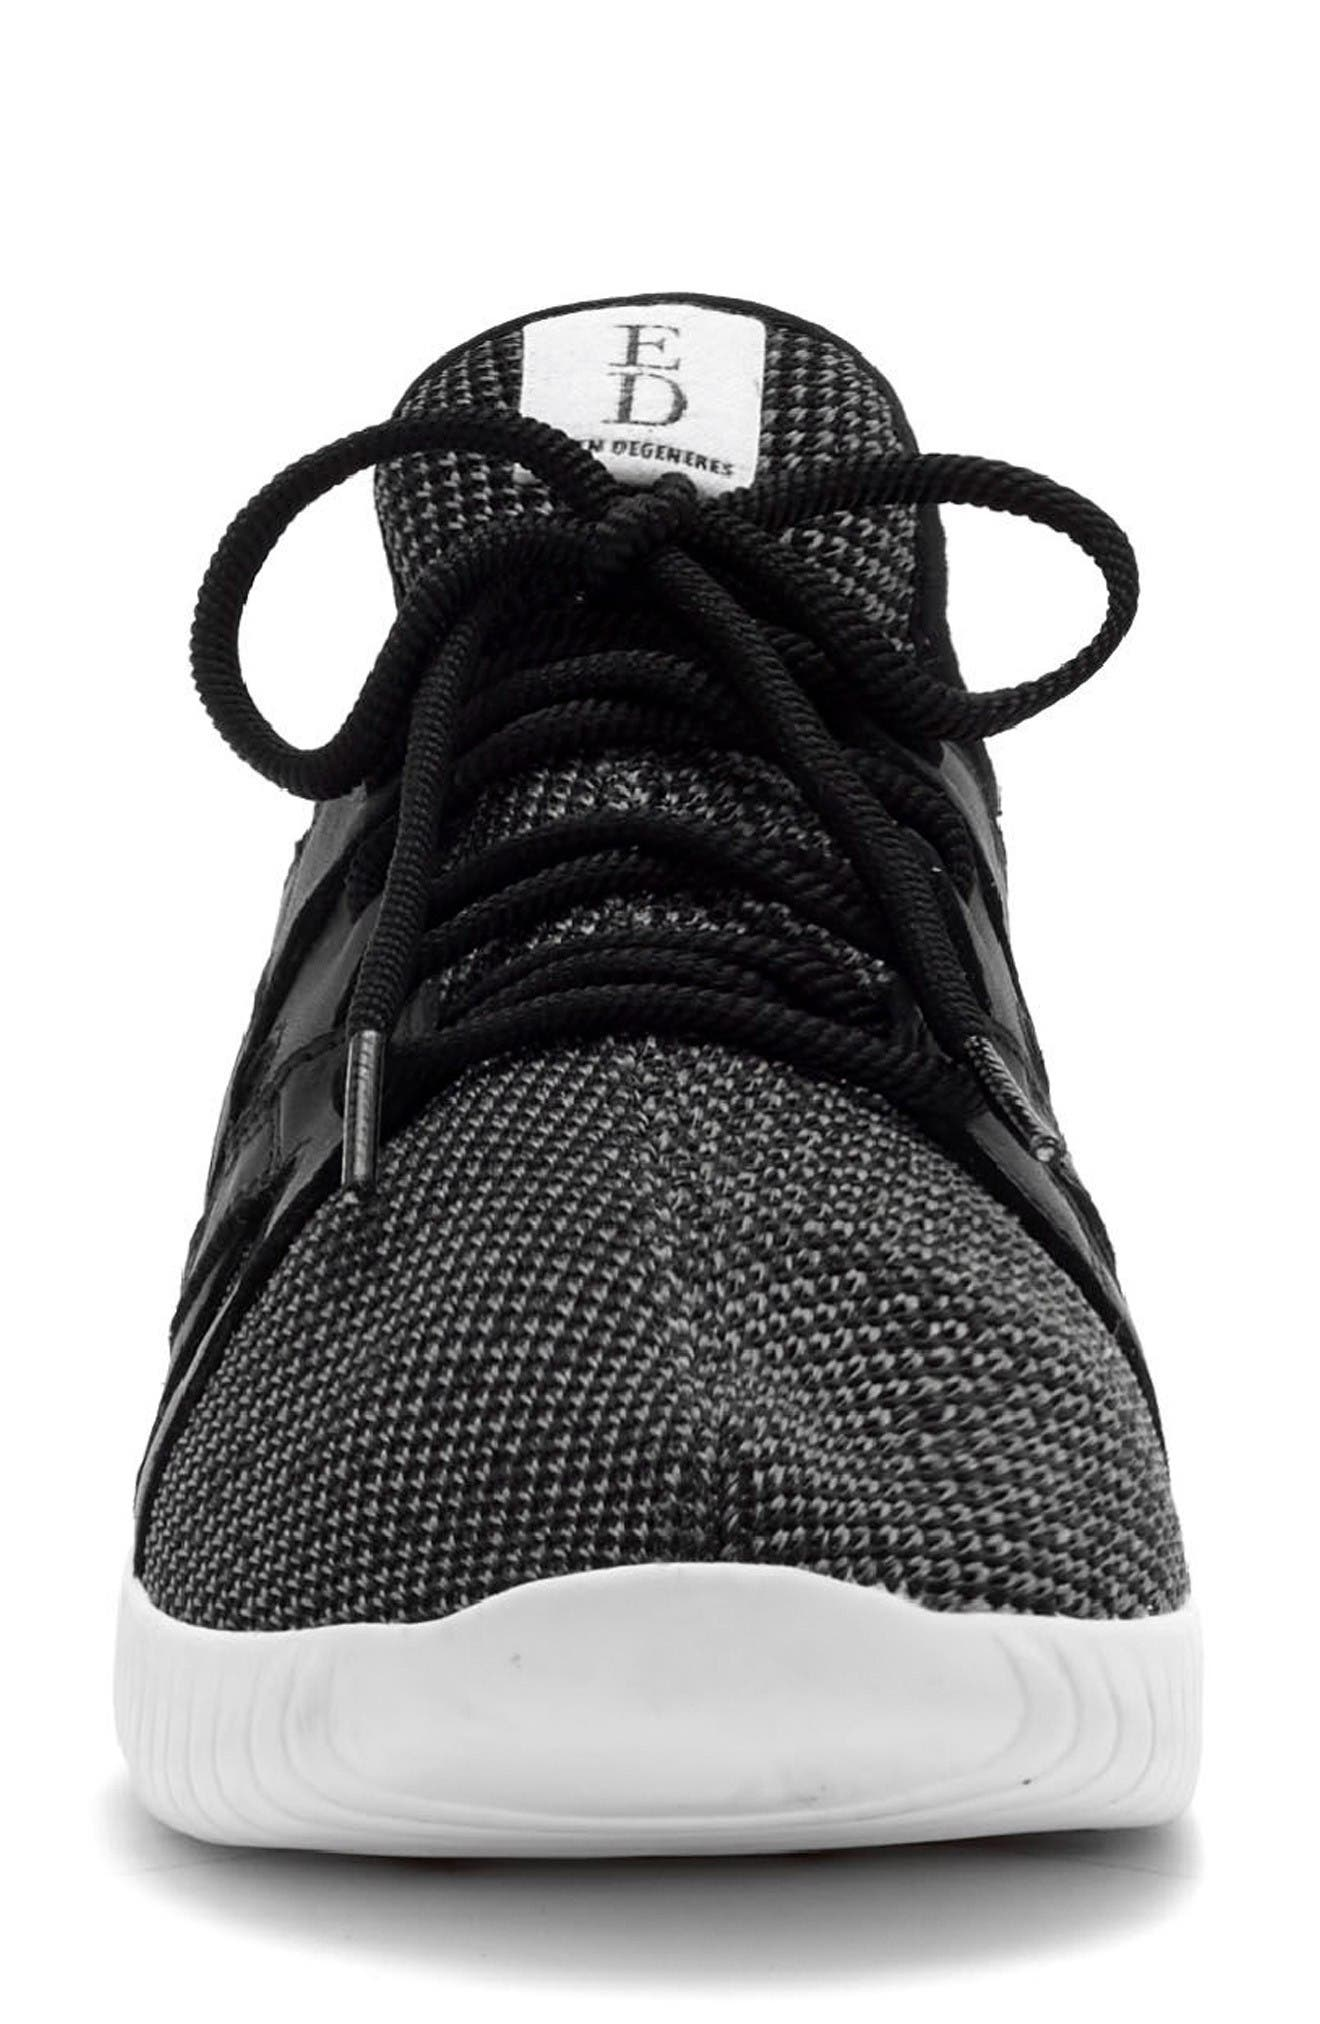 Havala Sneaker,                             Alternate thumbnail 3, color,                             Black/ Grey Fabric